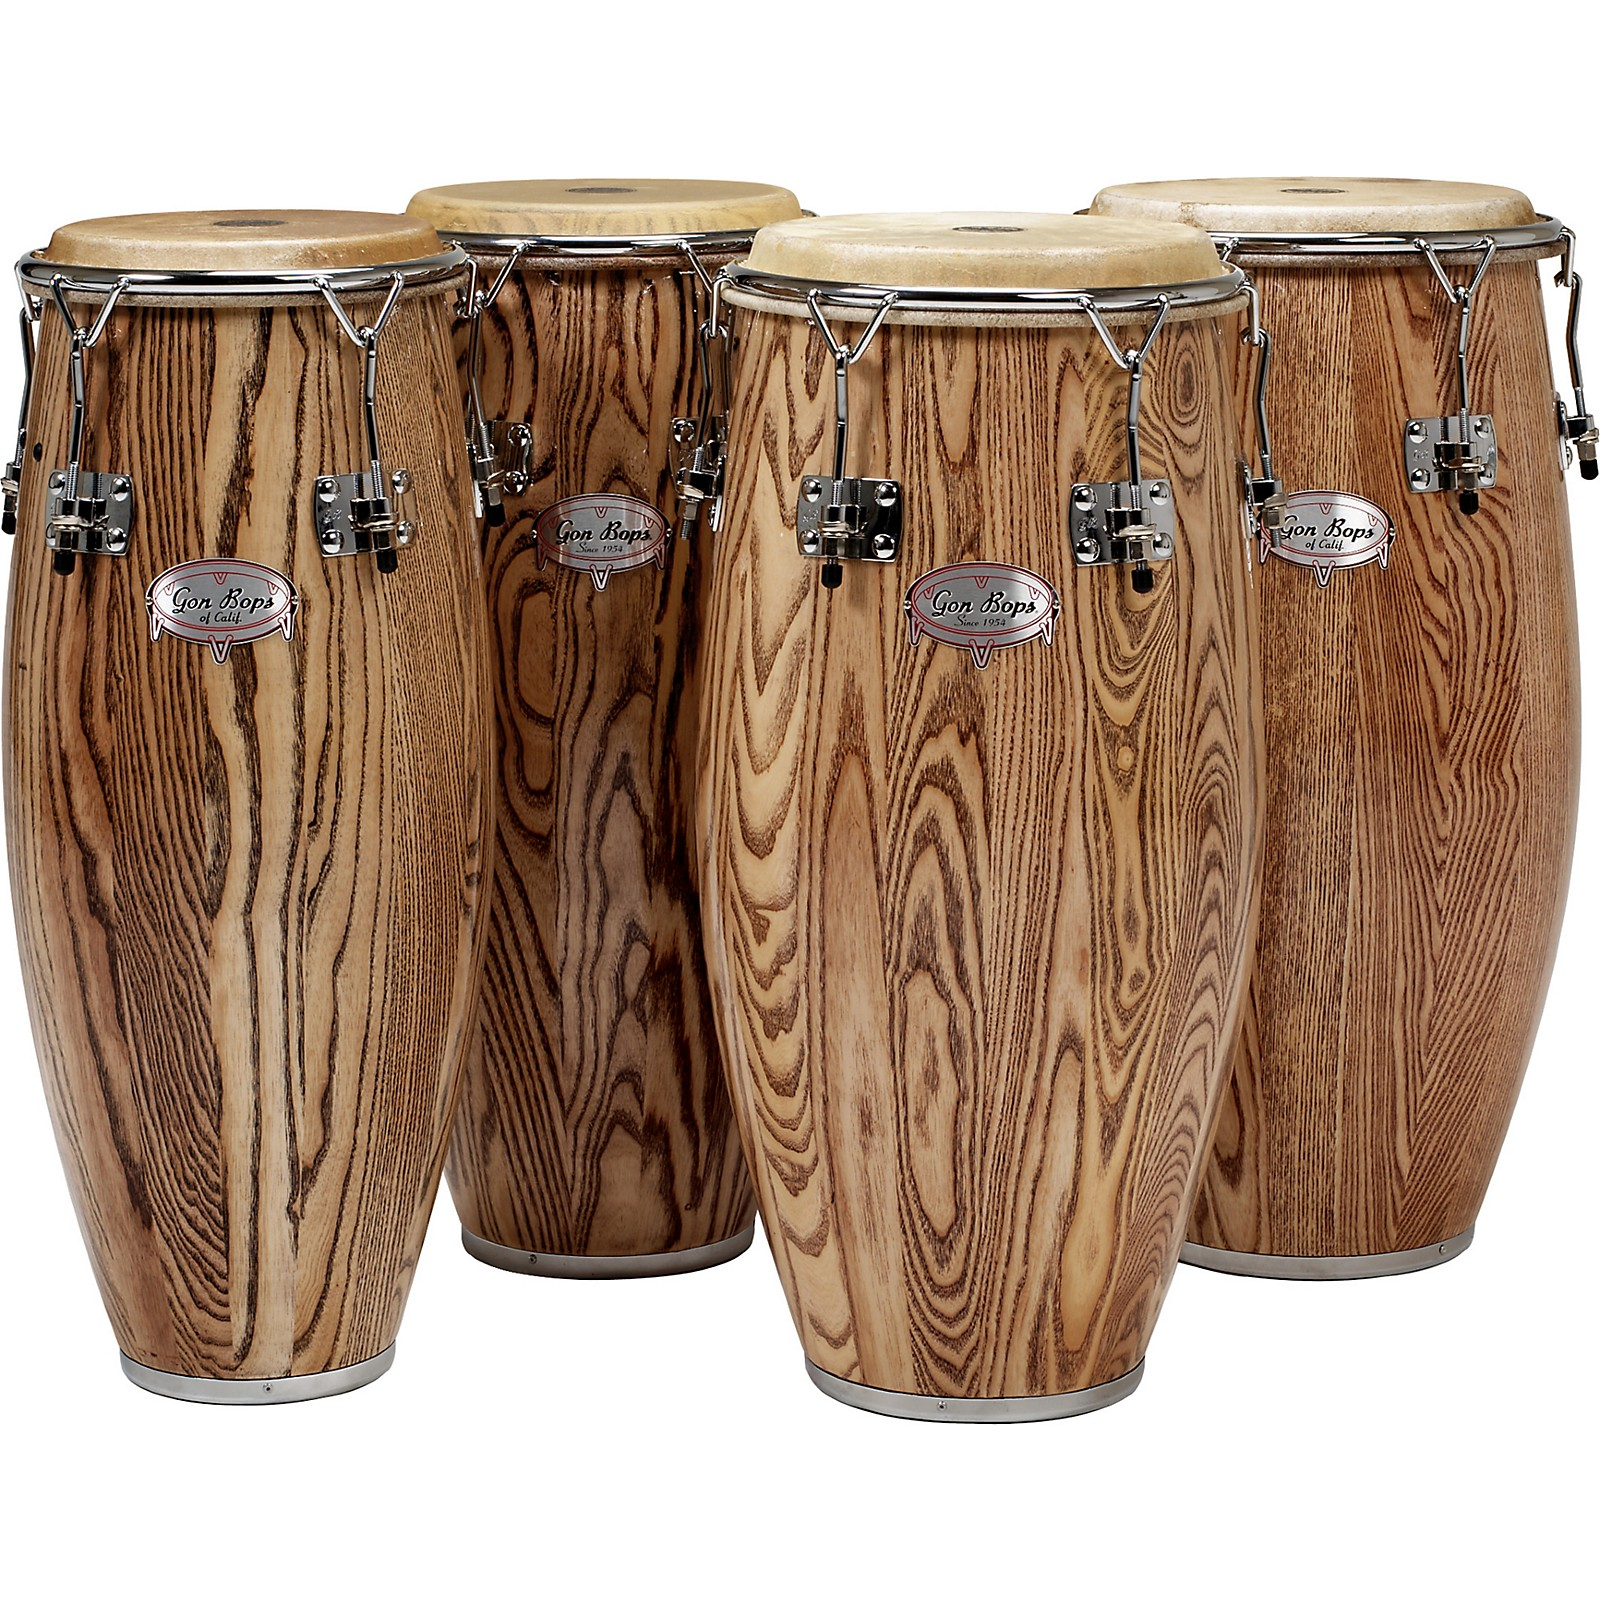 Gon Bops Alex Acuna Series Tumba Drum